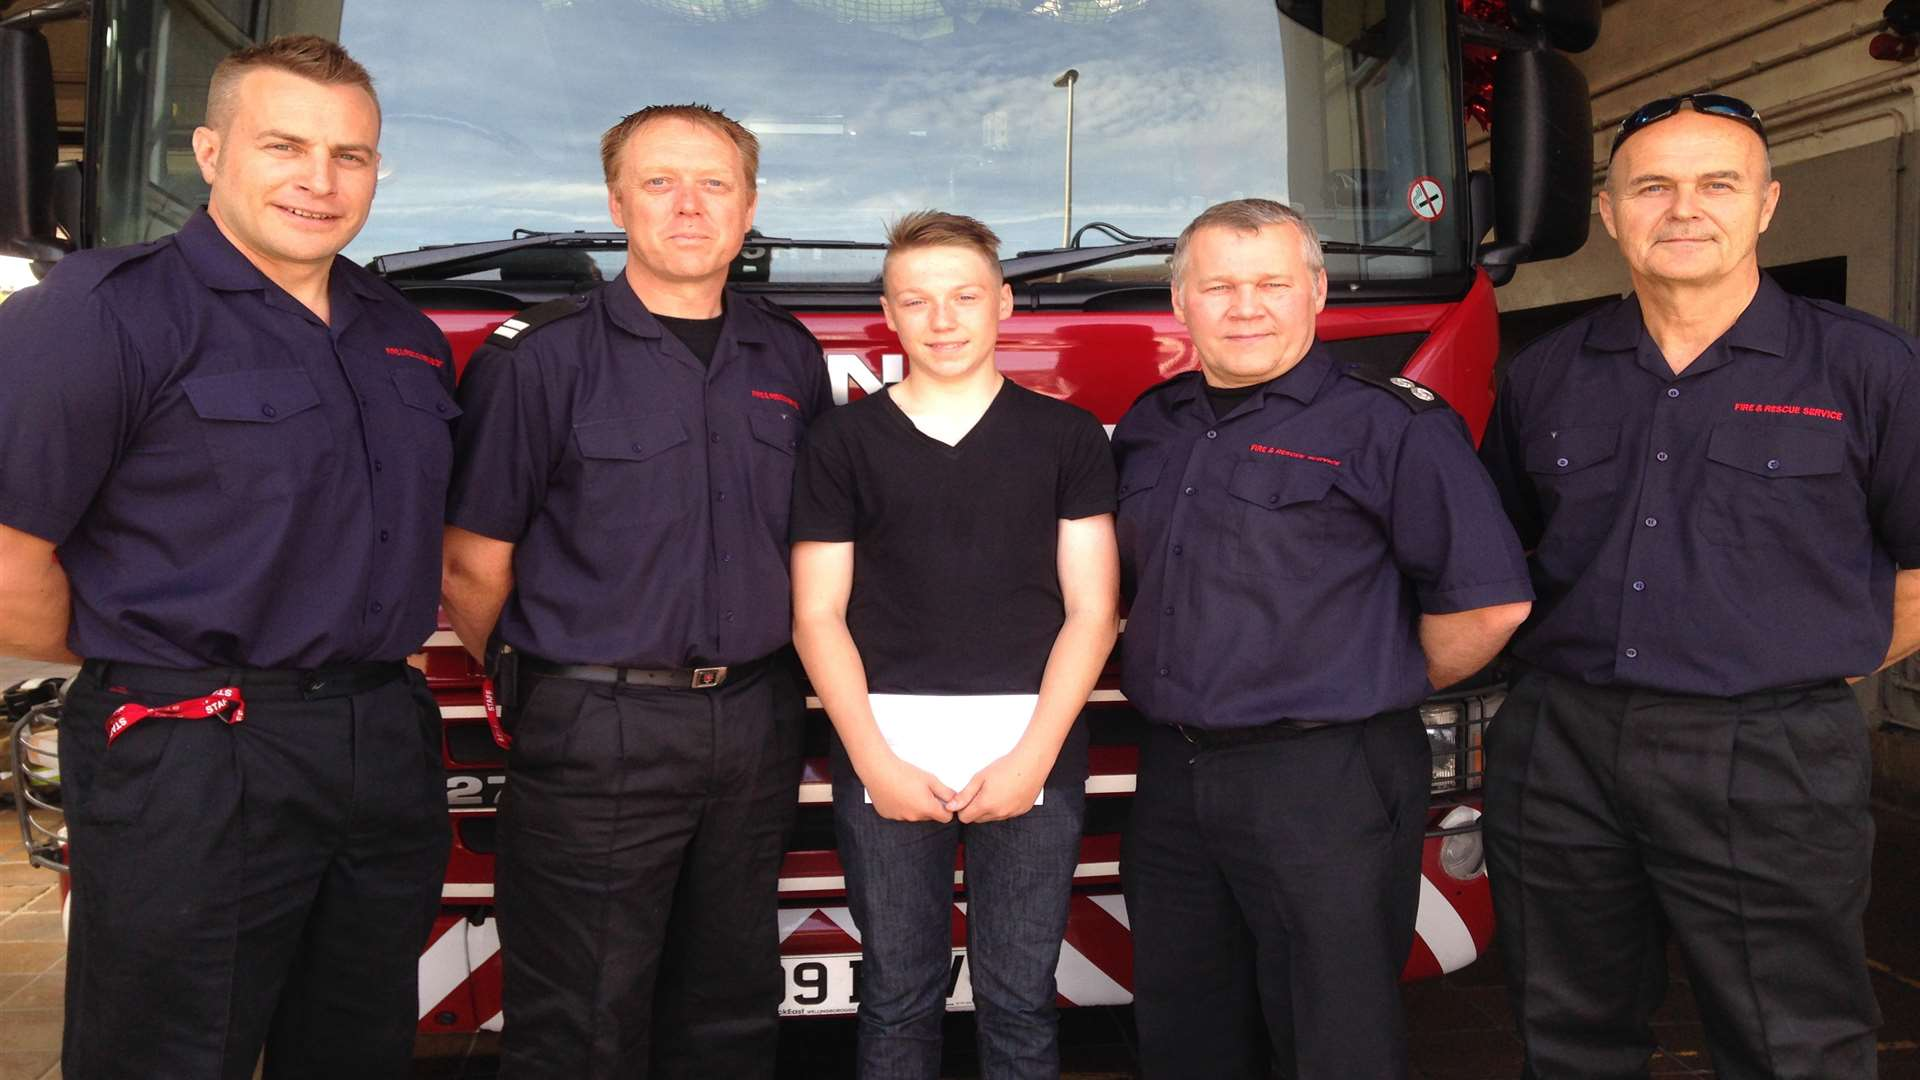 Ryan Smith, 16, with members of Red Watch at Medway Fire Station